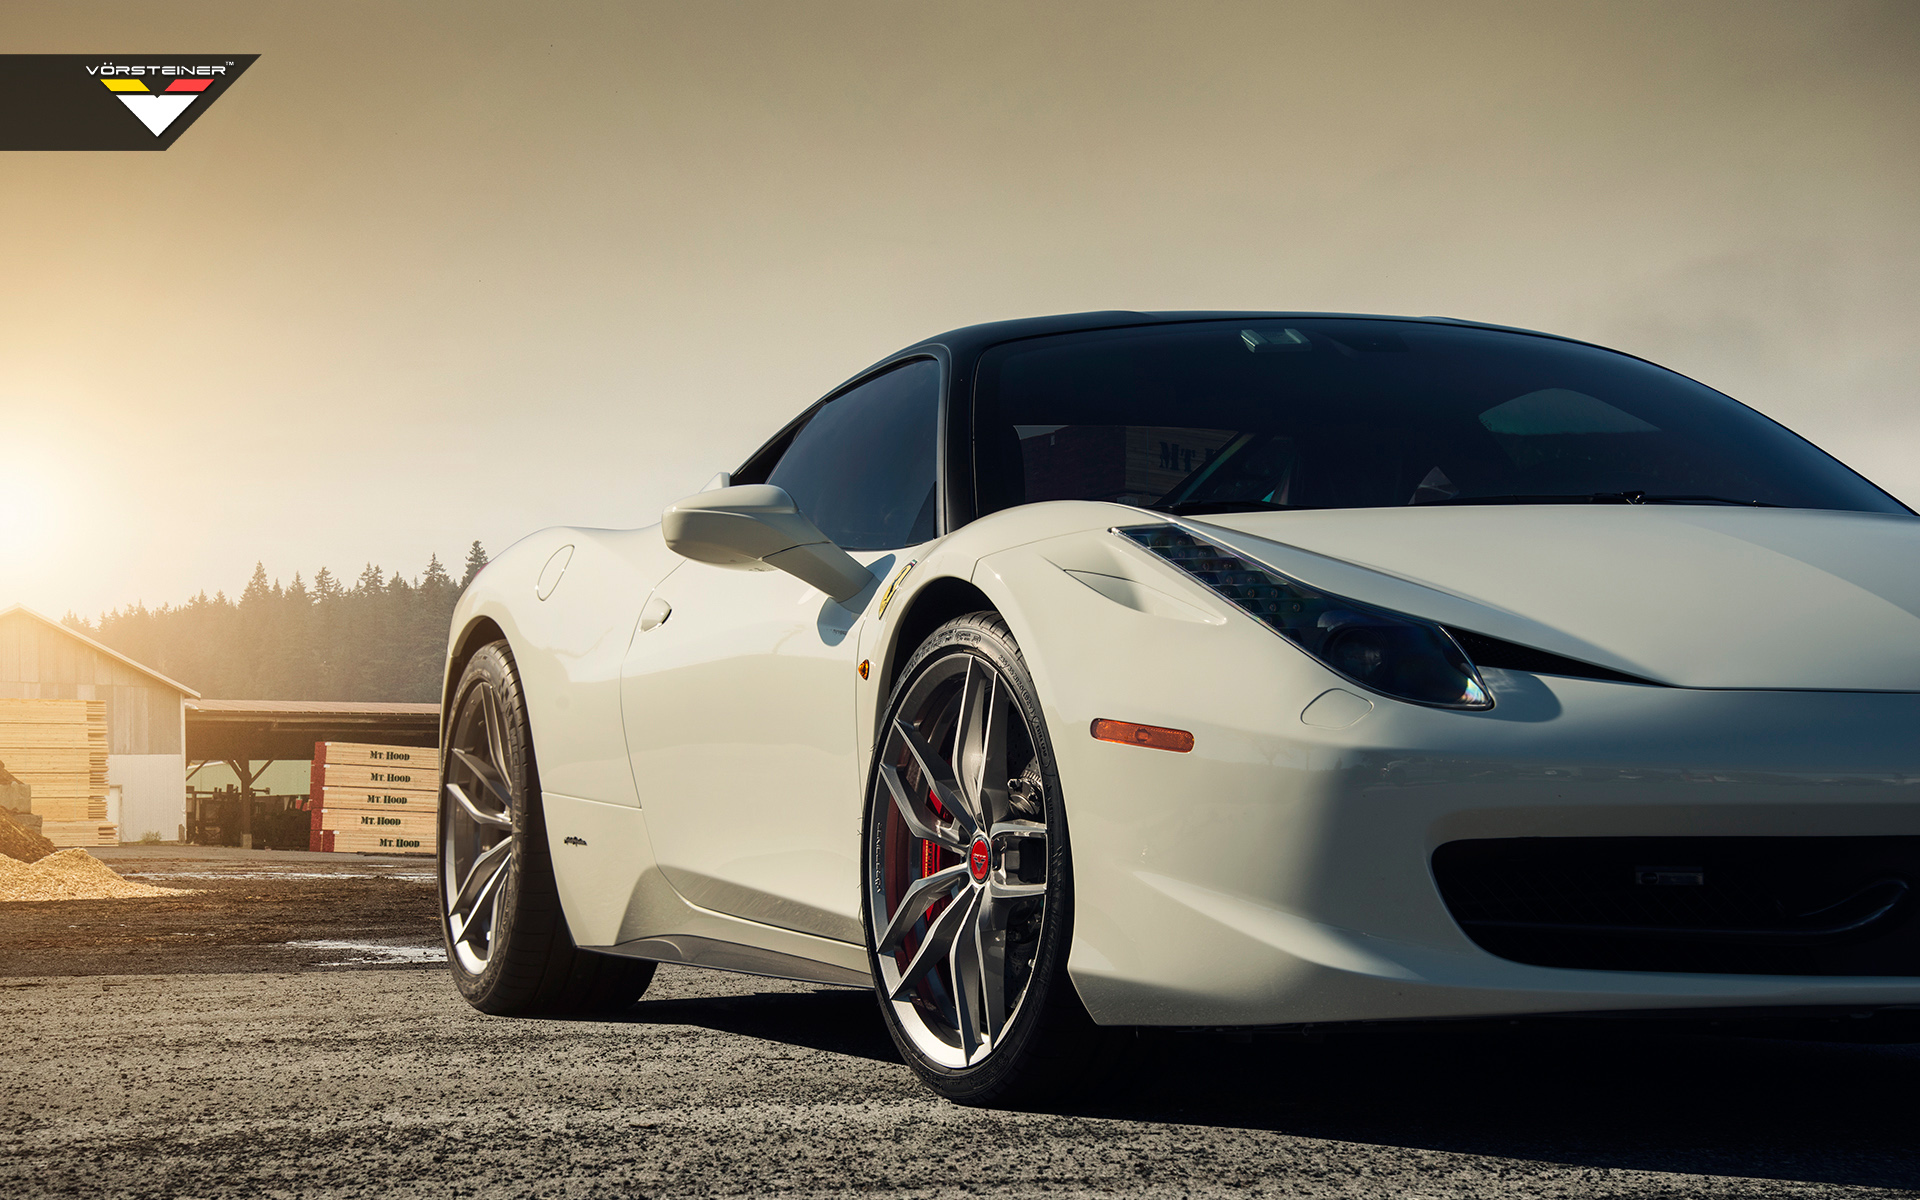 Great Ferrari 458 Italia Vorsteiner V FF 105 Wheels4 Amazing Design